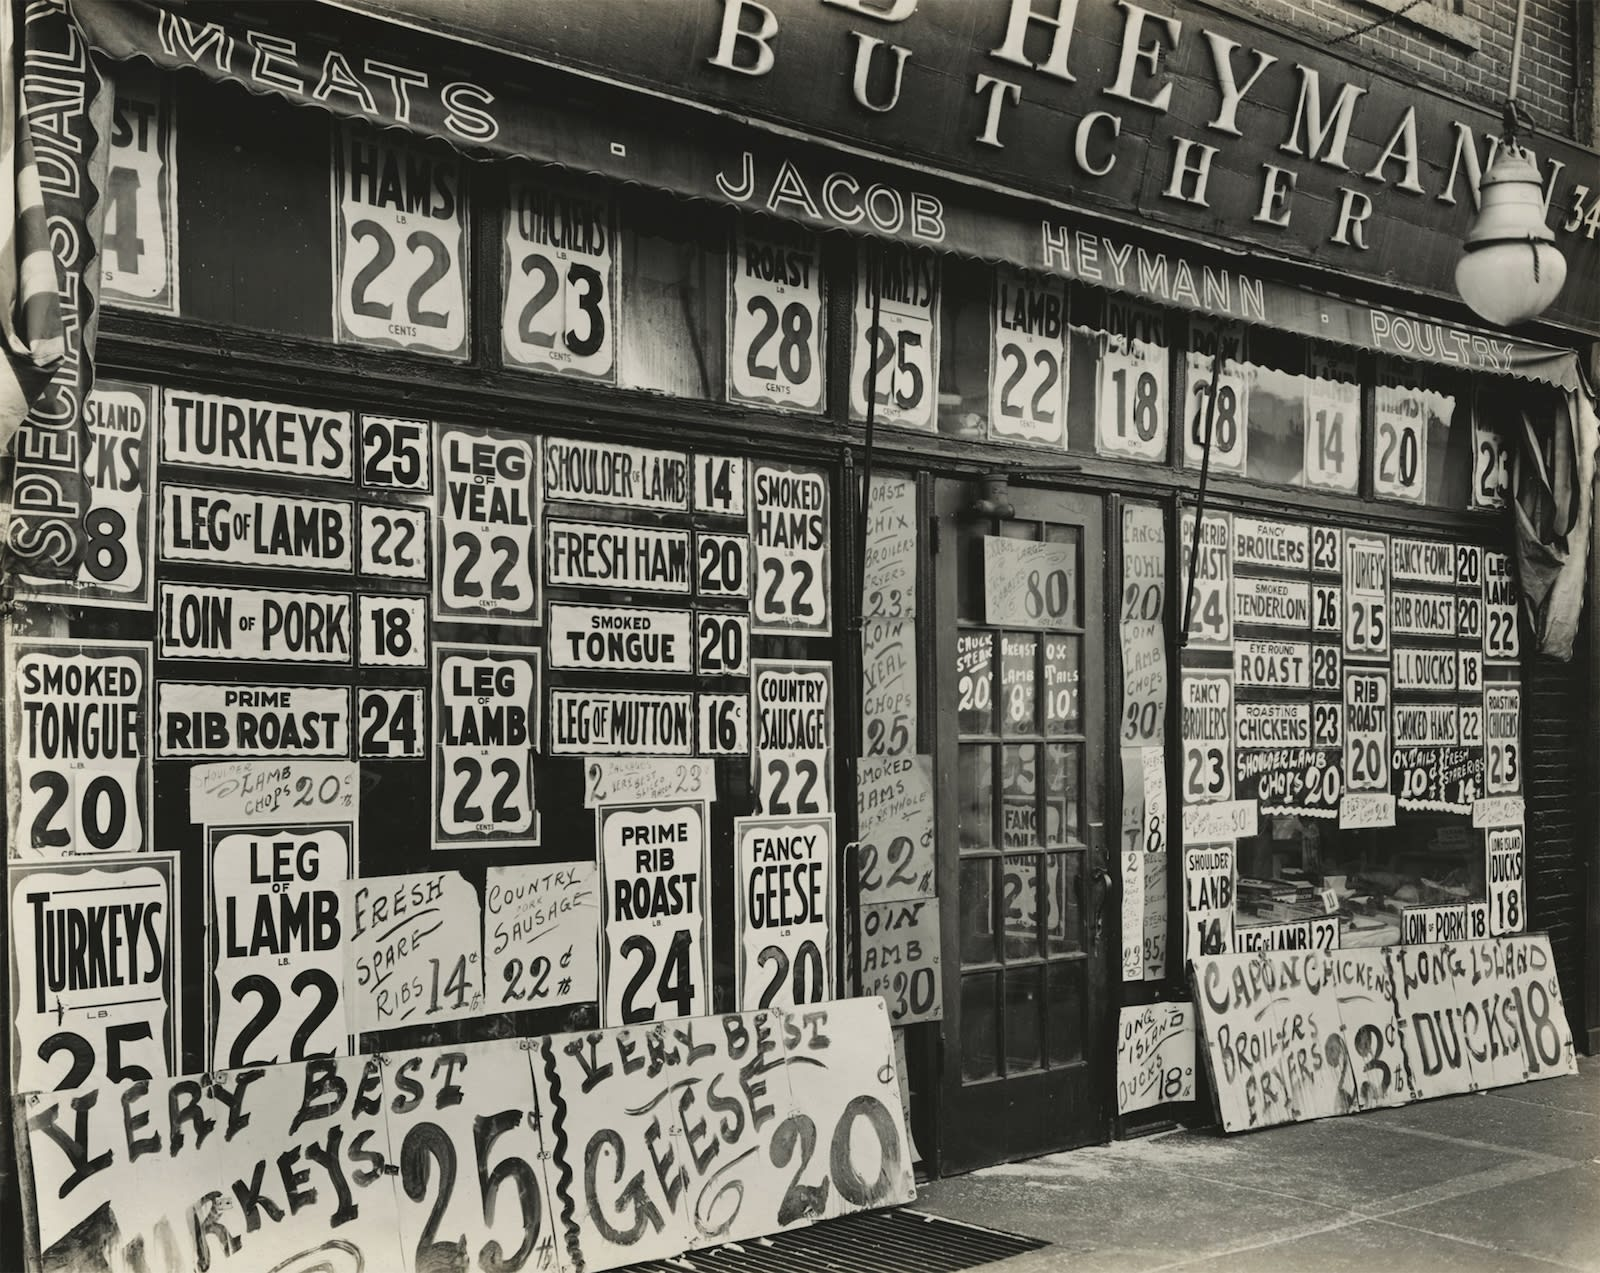 Berenice Abbott, Jacob Heymann Butcher Shop, New York City, 1938